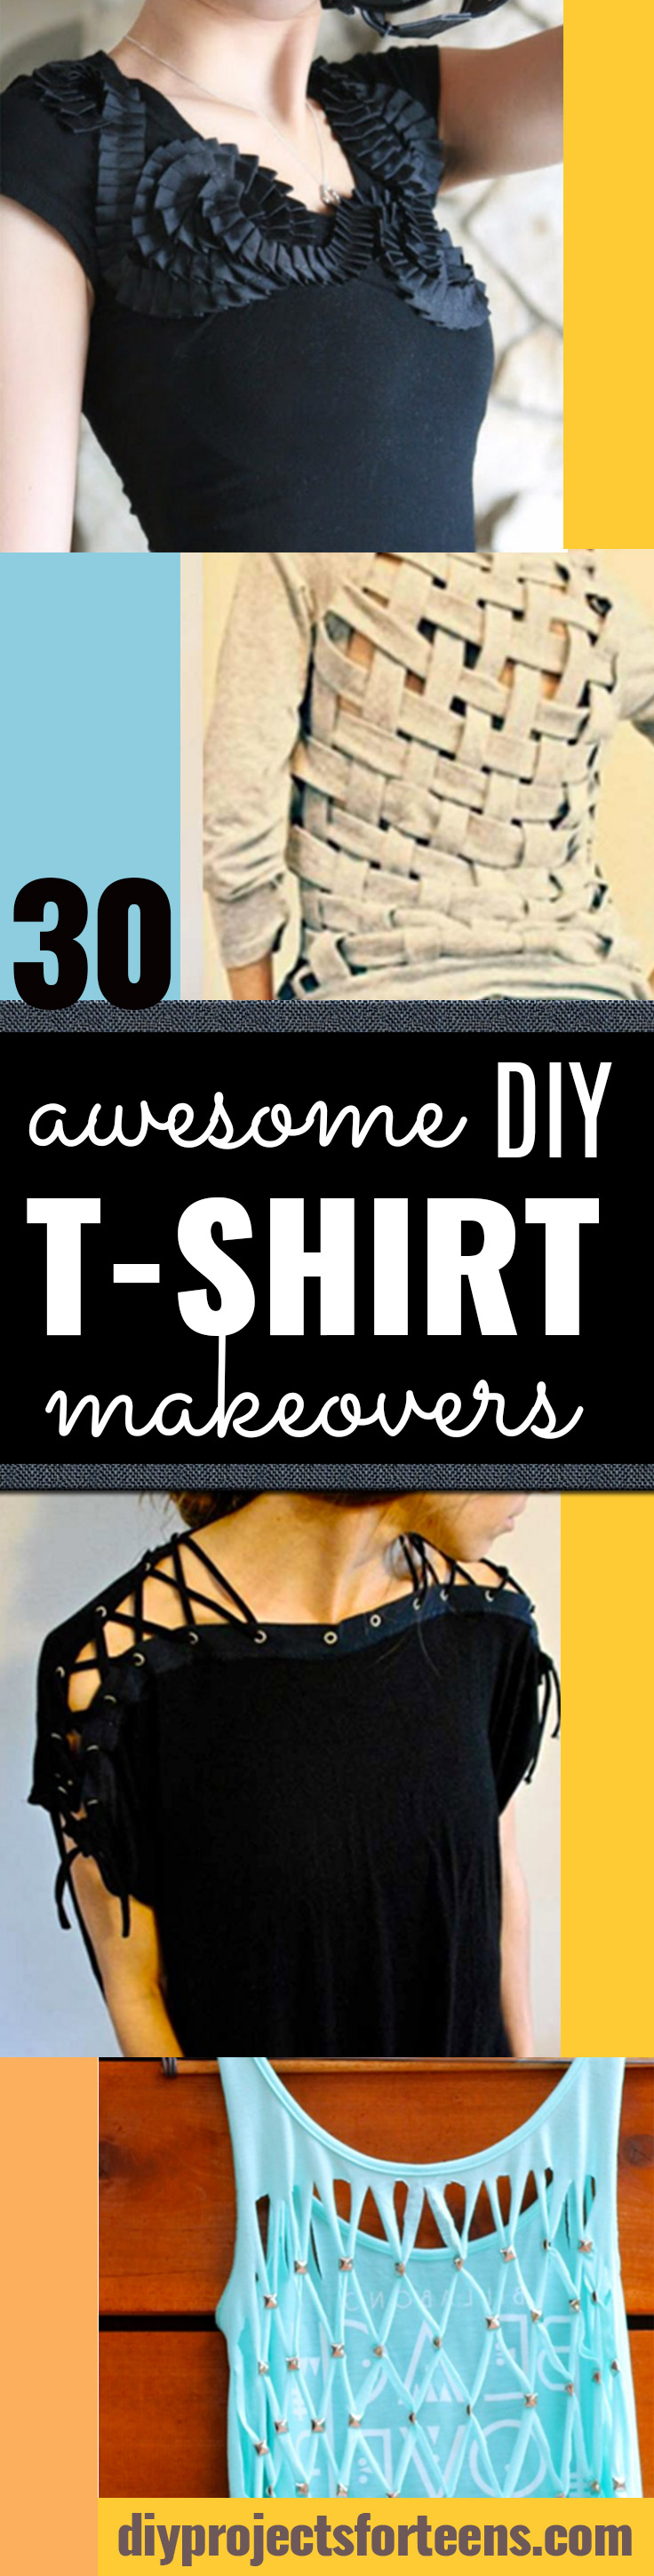 DIY T-Shirt Makeovers - Awesome Way to Upcycle Tees - Cool No Sew Tshirt Cutting Tutorials, Simple Summer Cutouts, How To Make Halter Tops and T-Shirt Dresses. Easy Tutorials and Instructions for Teens and Adults http:diyprojectsforteens.com/diy-tshirt-makeovers